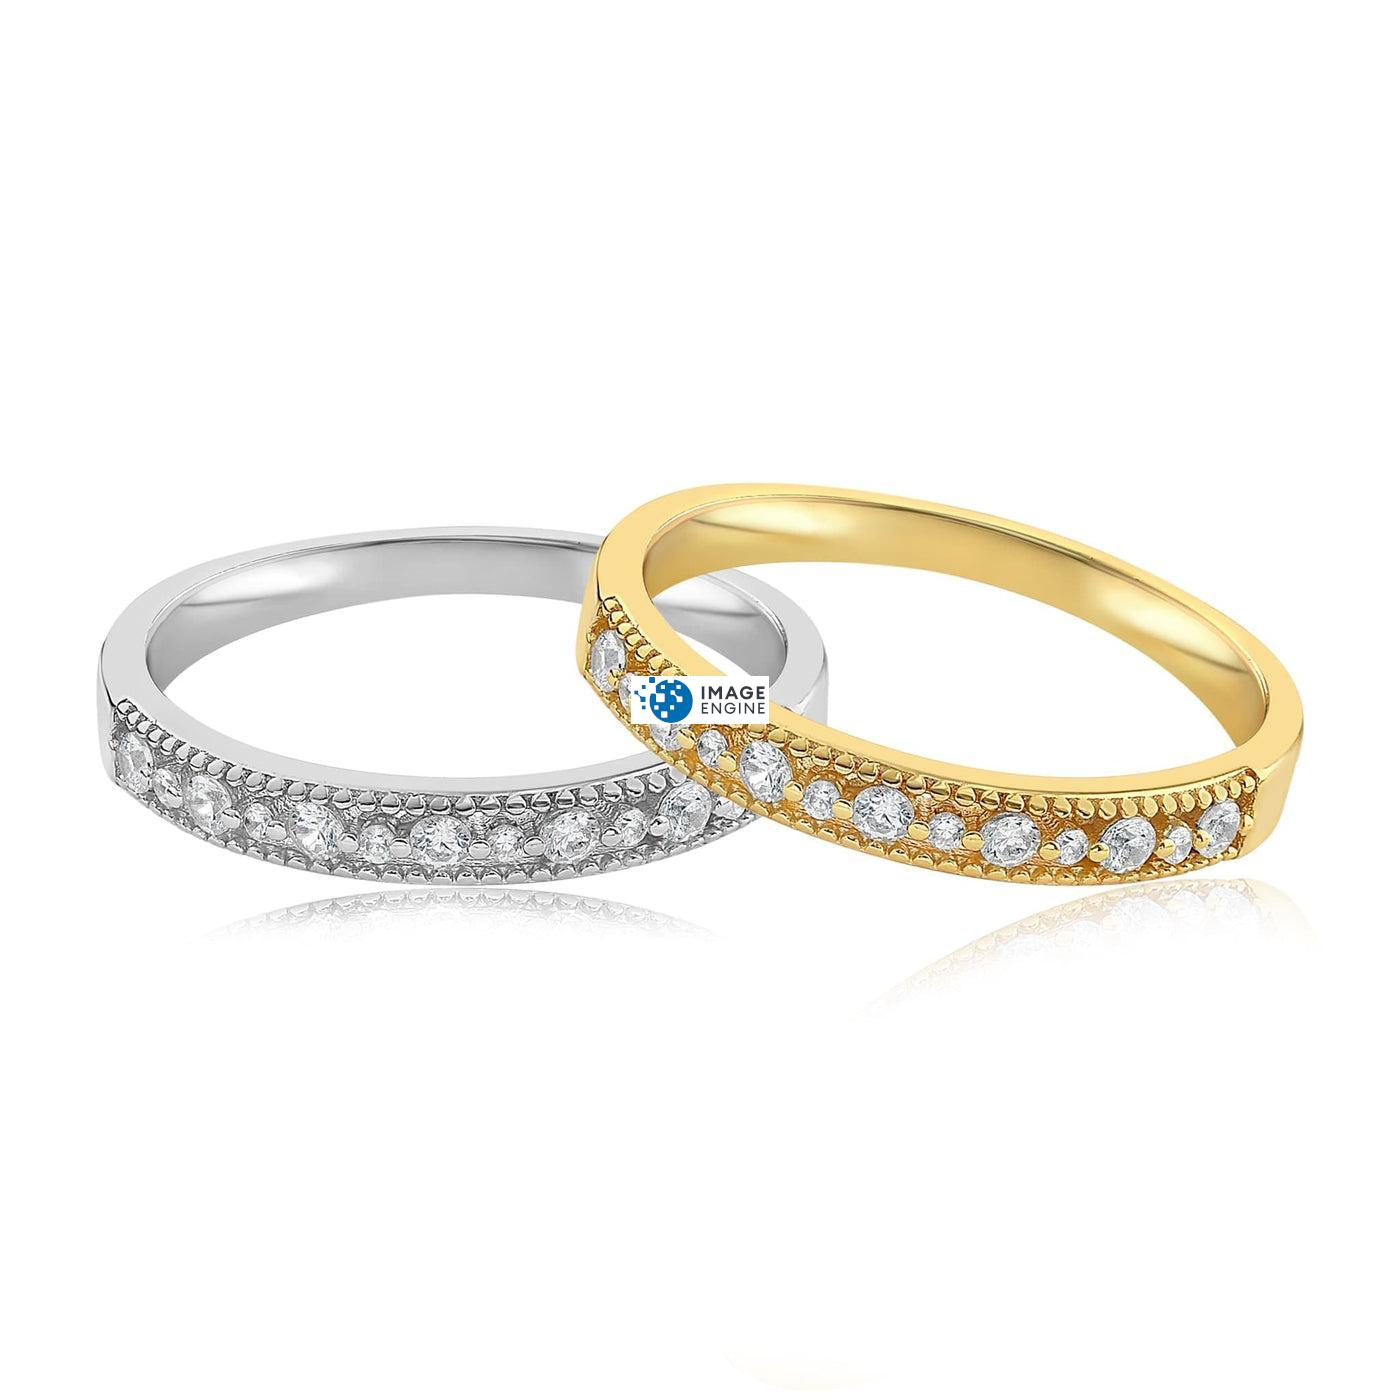 Joyce Layered Stack Ring - Front View Side by Side - 18K Yellow Gold Vermeil and 925 Sterling Silver